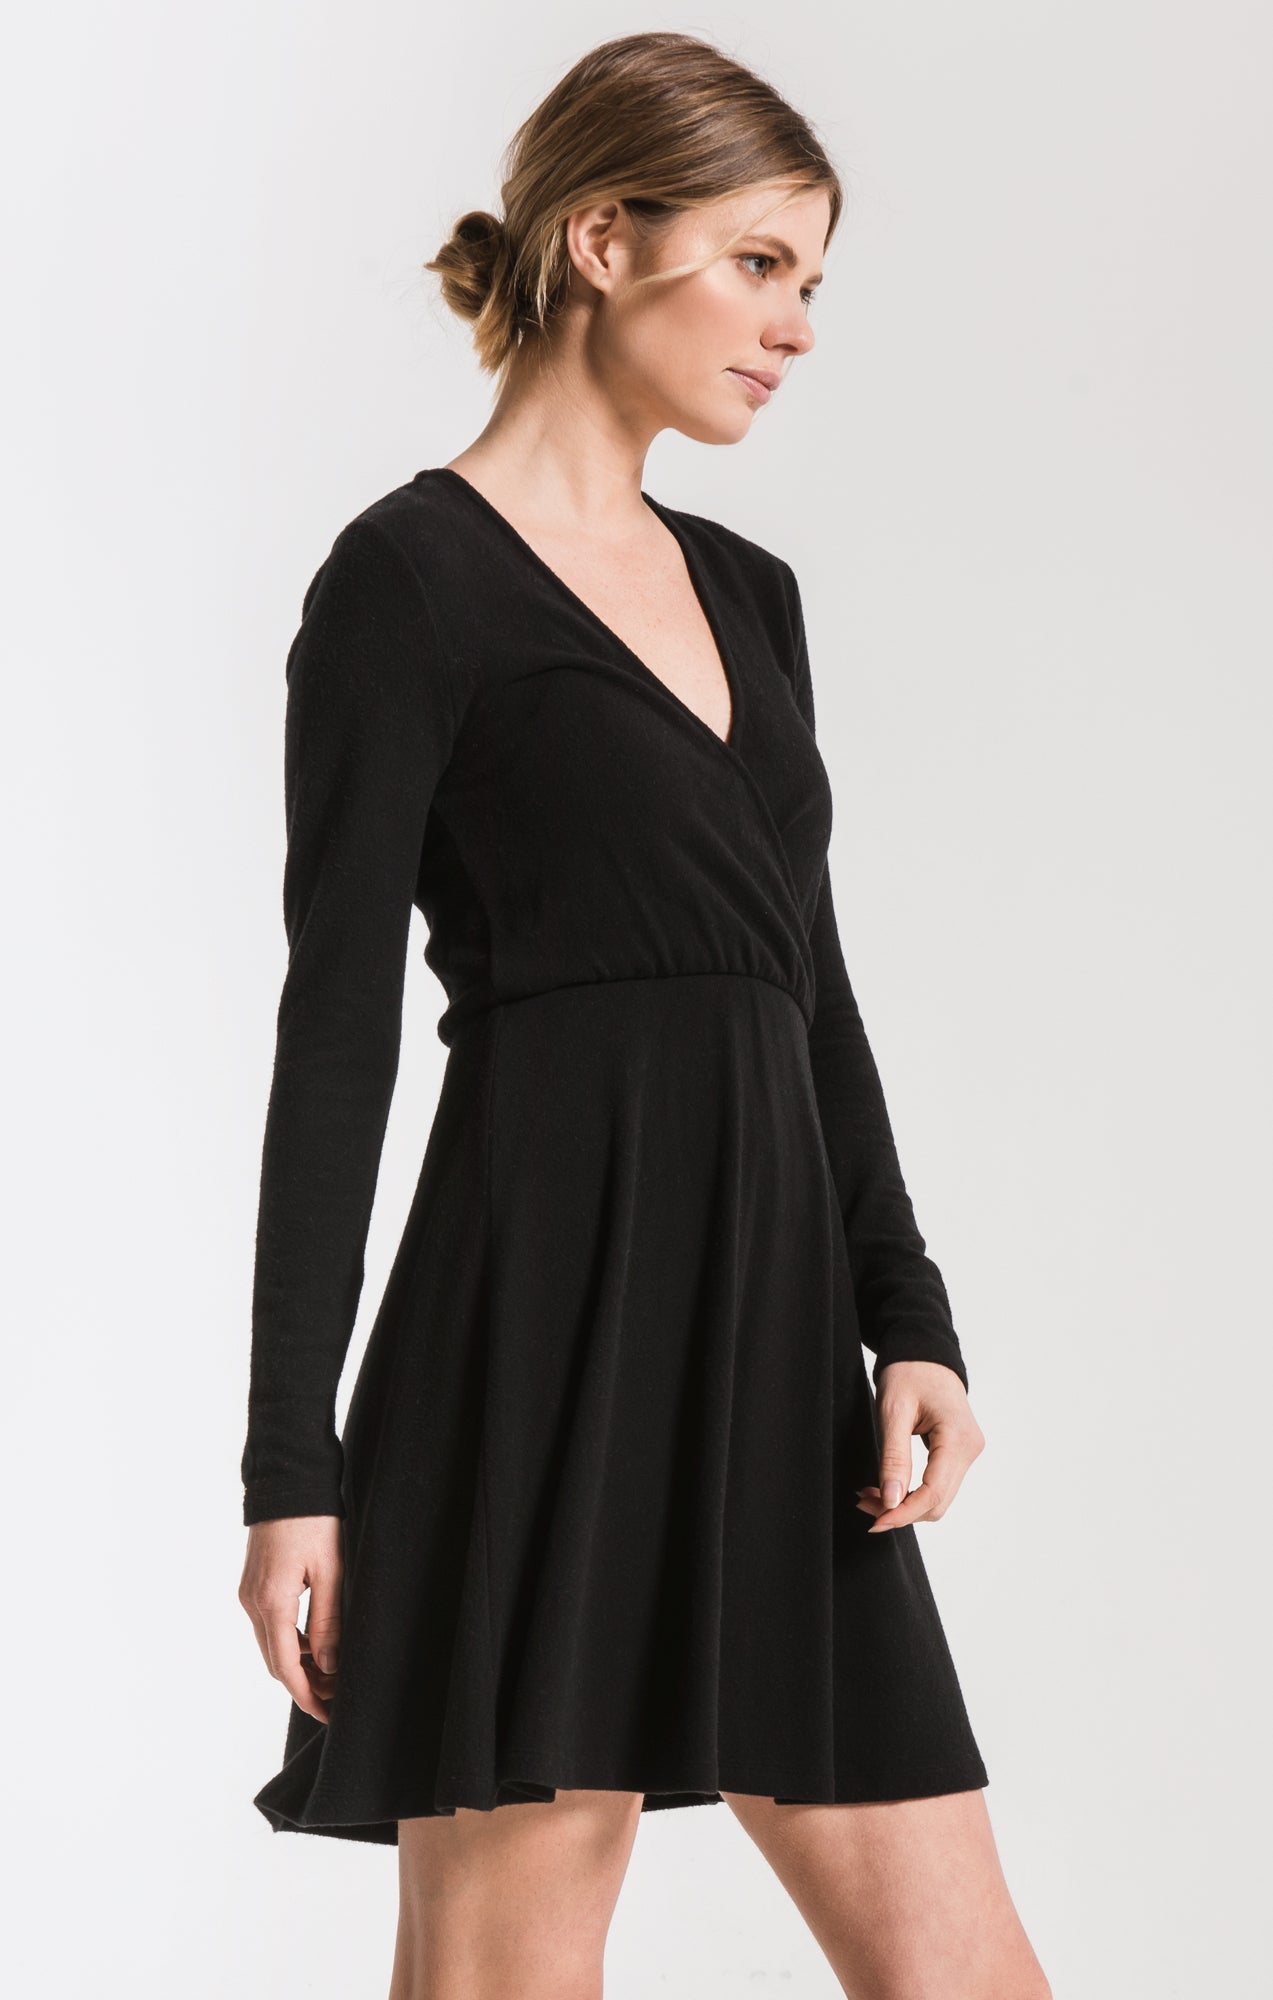 Dresses The Soft Spun Surplice Dress Black